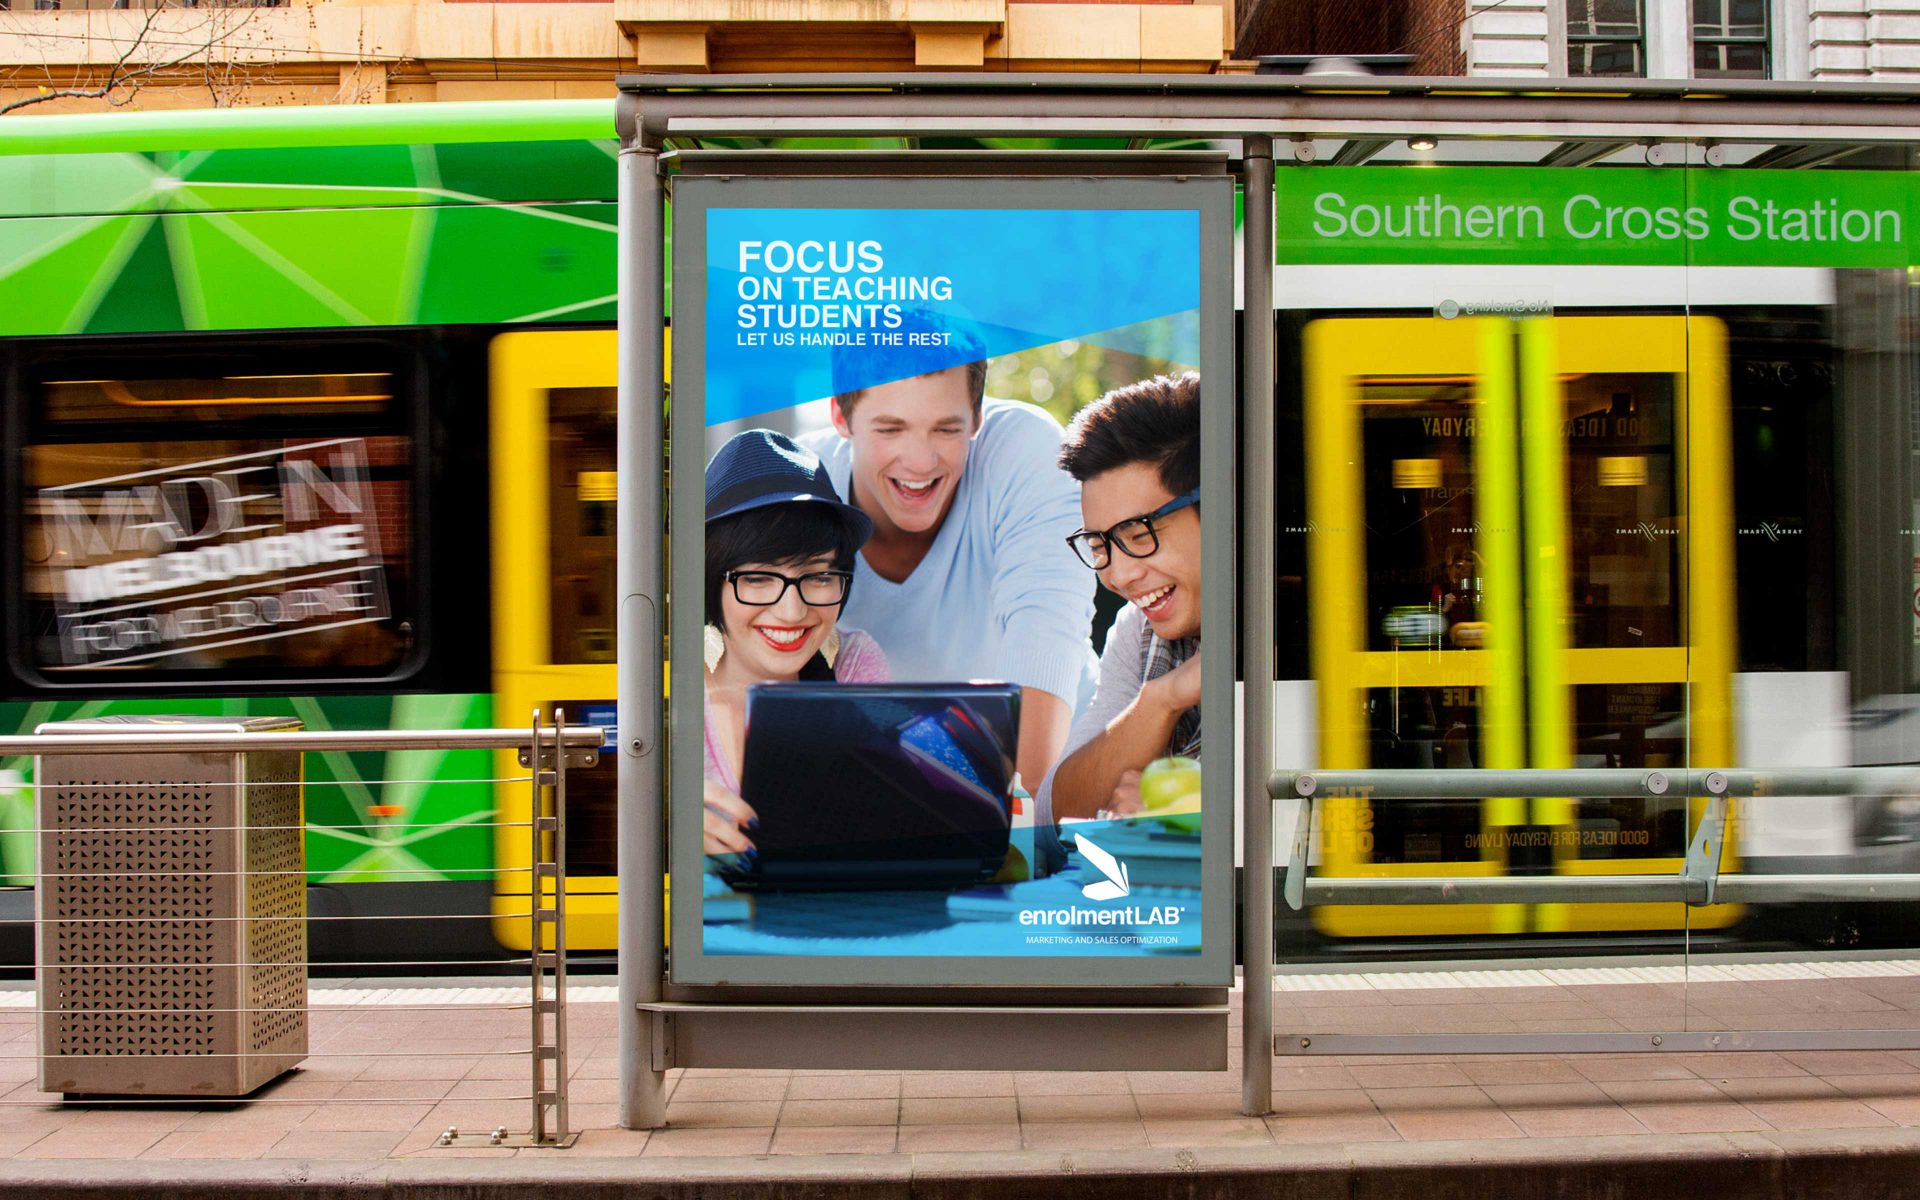 Enrolment LAB brand by Differ outdoor advertising